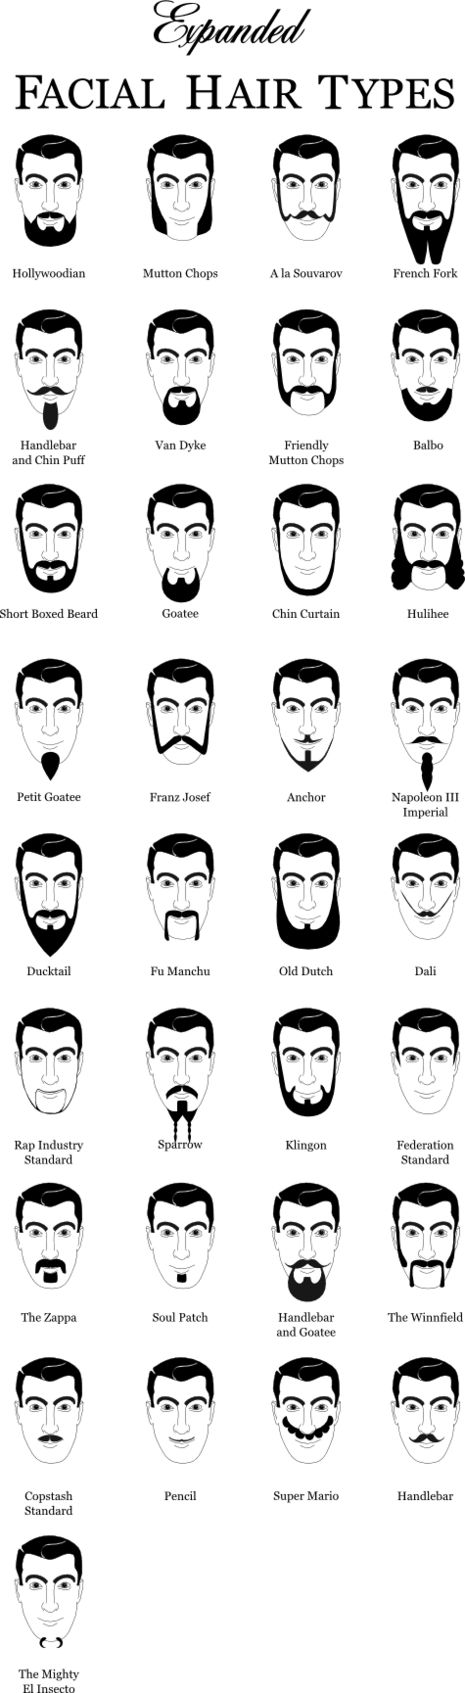 Tremendous 1000 Ideas About Facial Hair Styles On Pinterest Beard Styles Short Hairstyles Gunalazisus